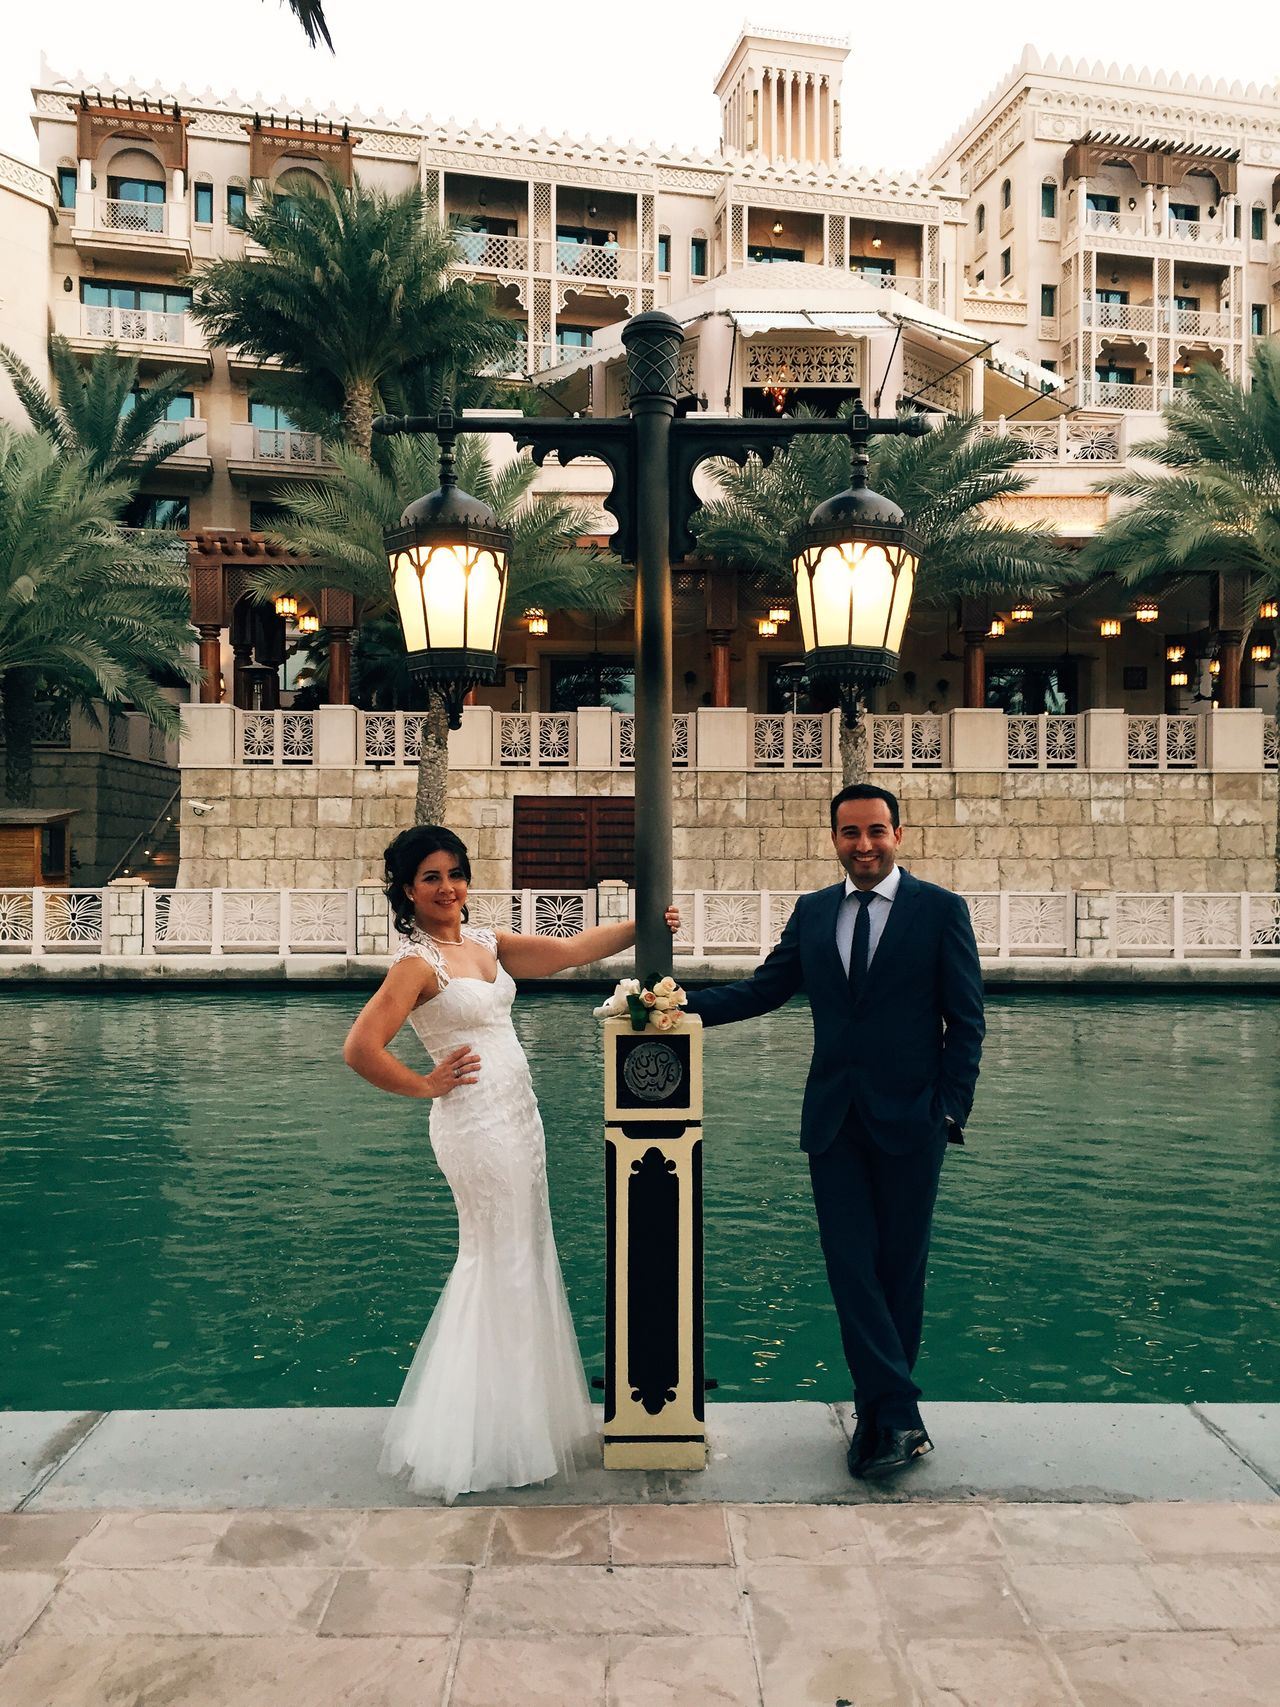 Architecture Built Structure Casual Clothing City City Life Day Dubai Full Length Leisure Activity Lifestyles Outdoors Portrait Tree Water Wedding